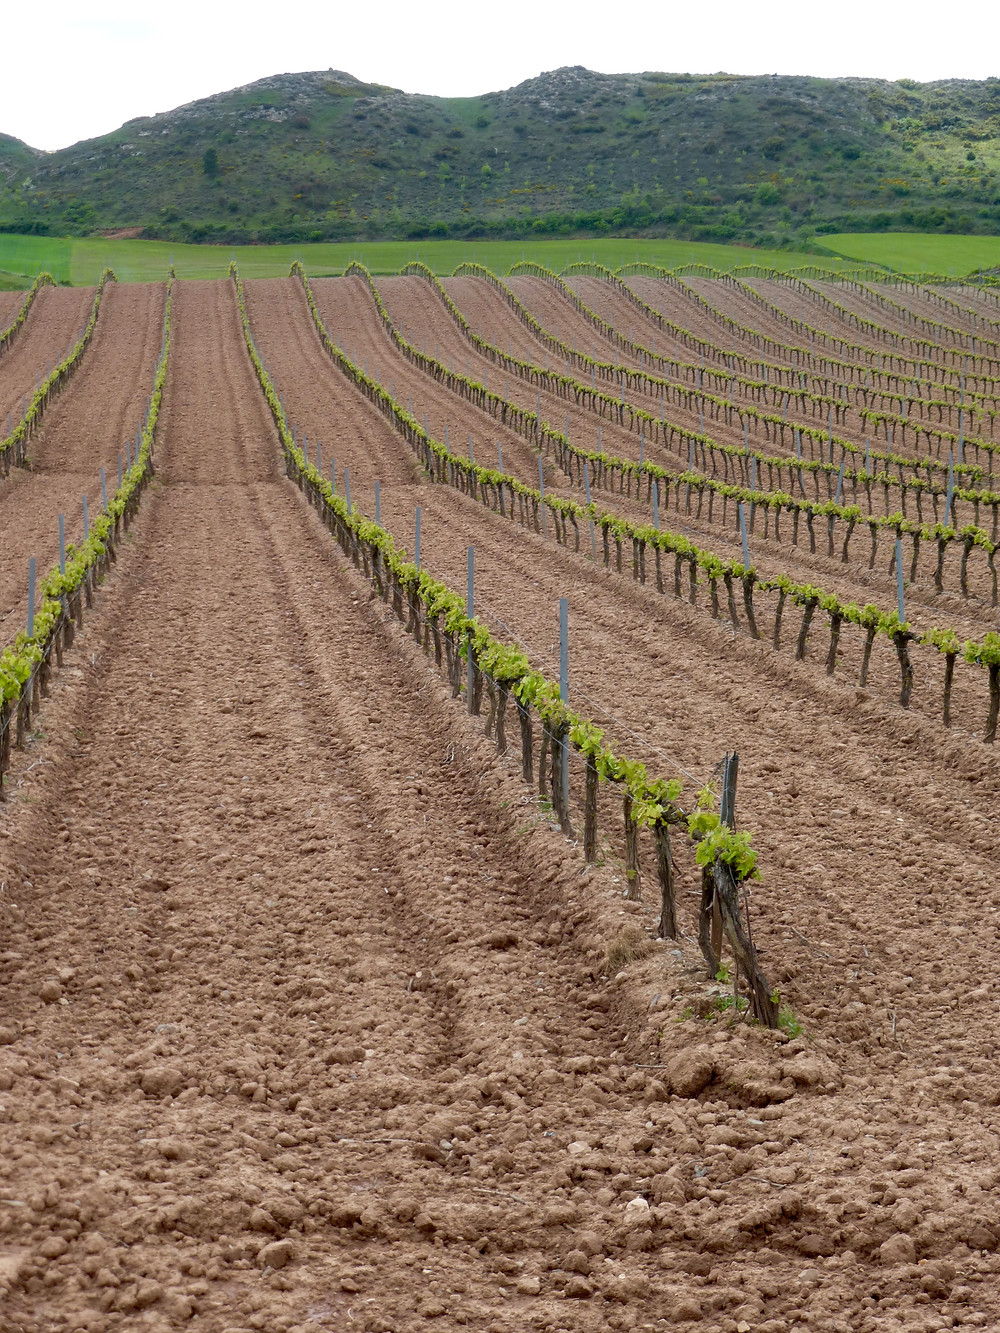 Spain, Camino de Santiago, vineyard